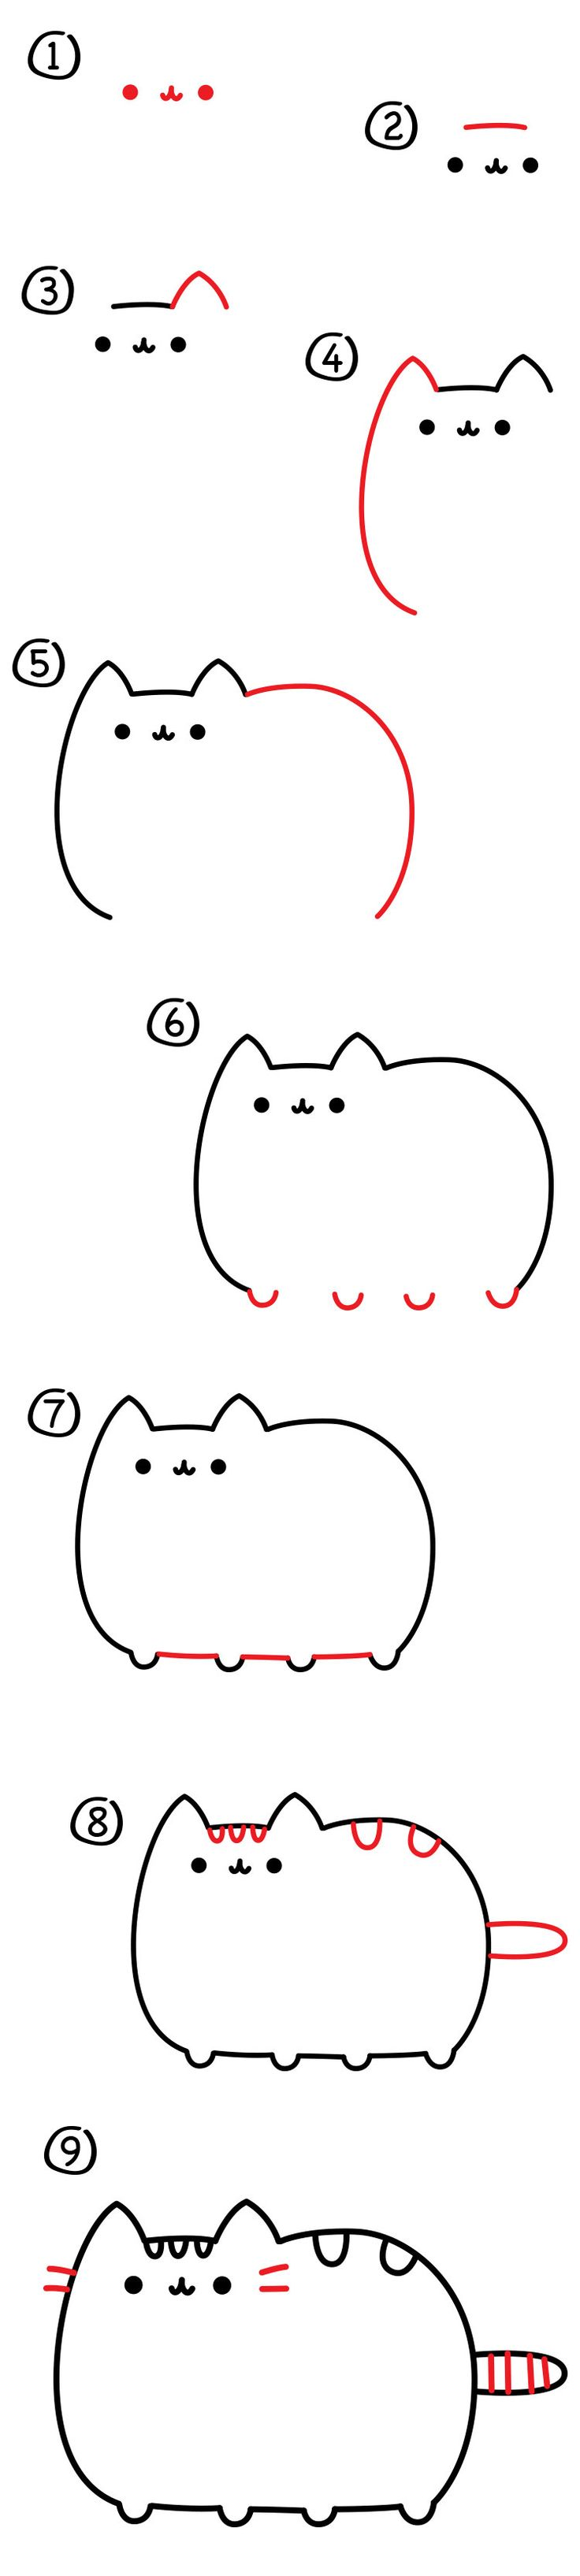 Follow along and learn how to draw the Pusheen Cat! Also visit the official website and draw things for your cat to play with.